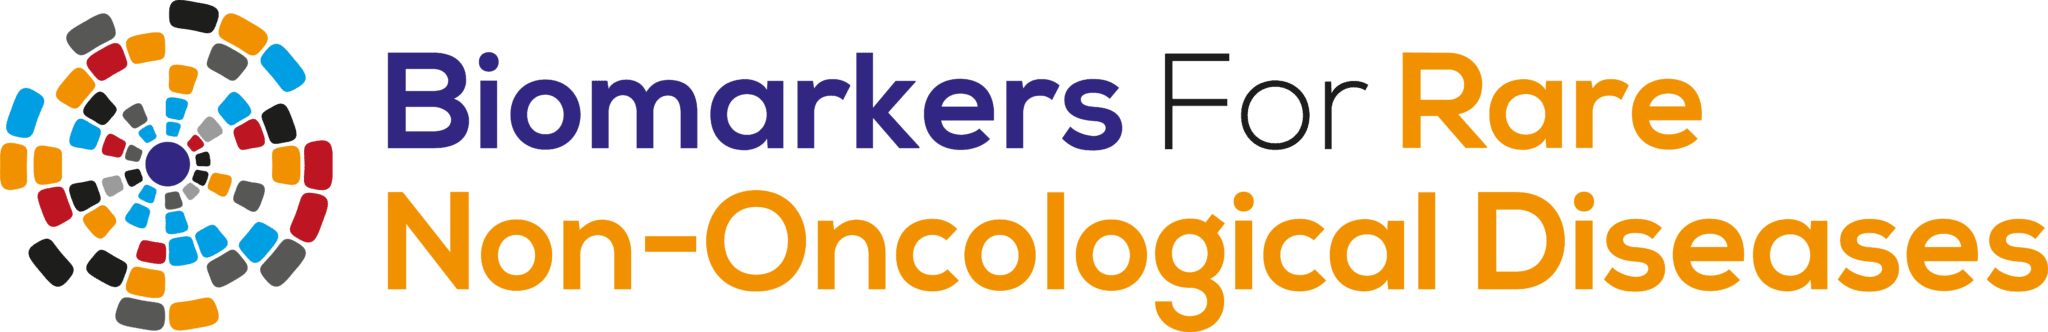 HW200124 Biomarkers for Rare Non-Oncological Diseases logo FINAL